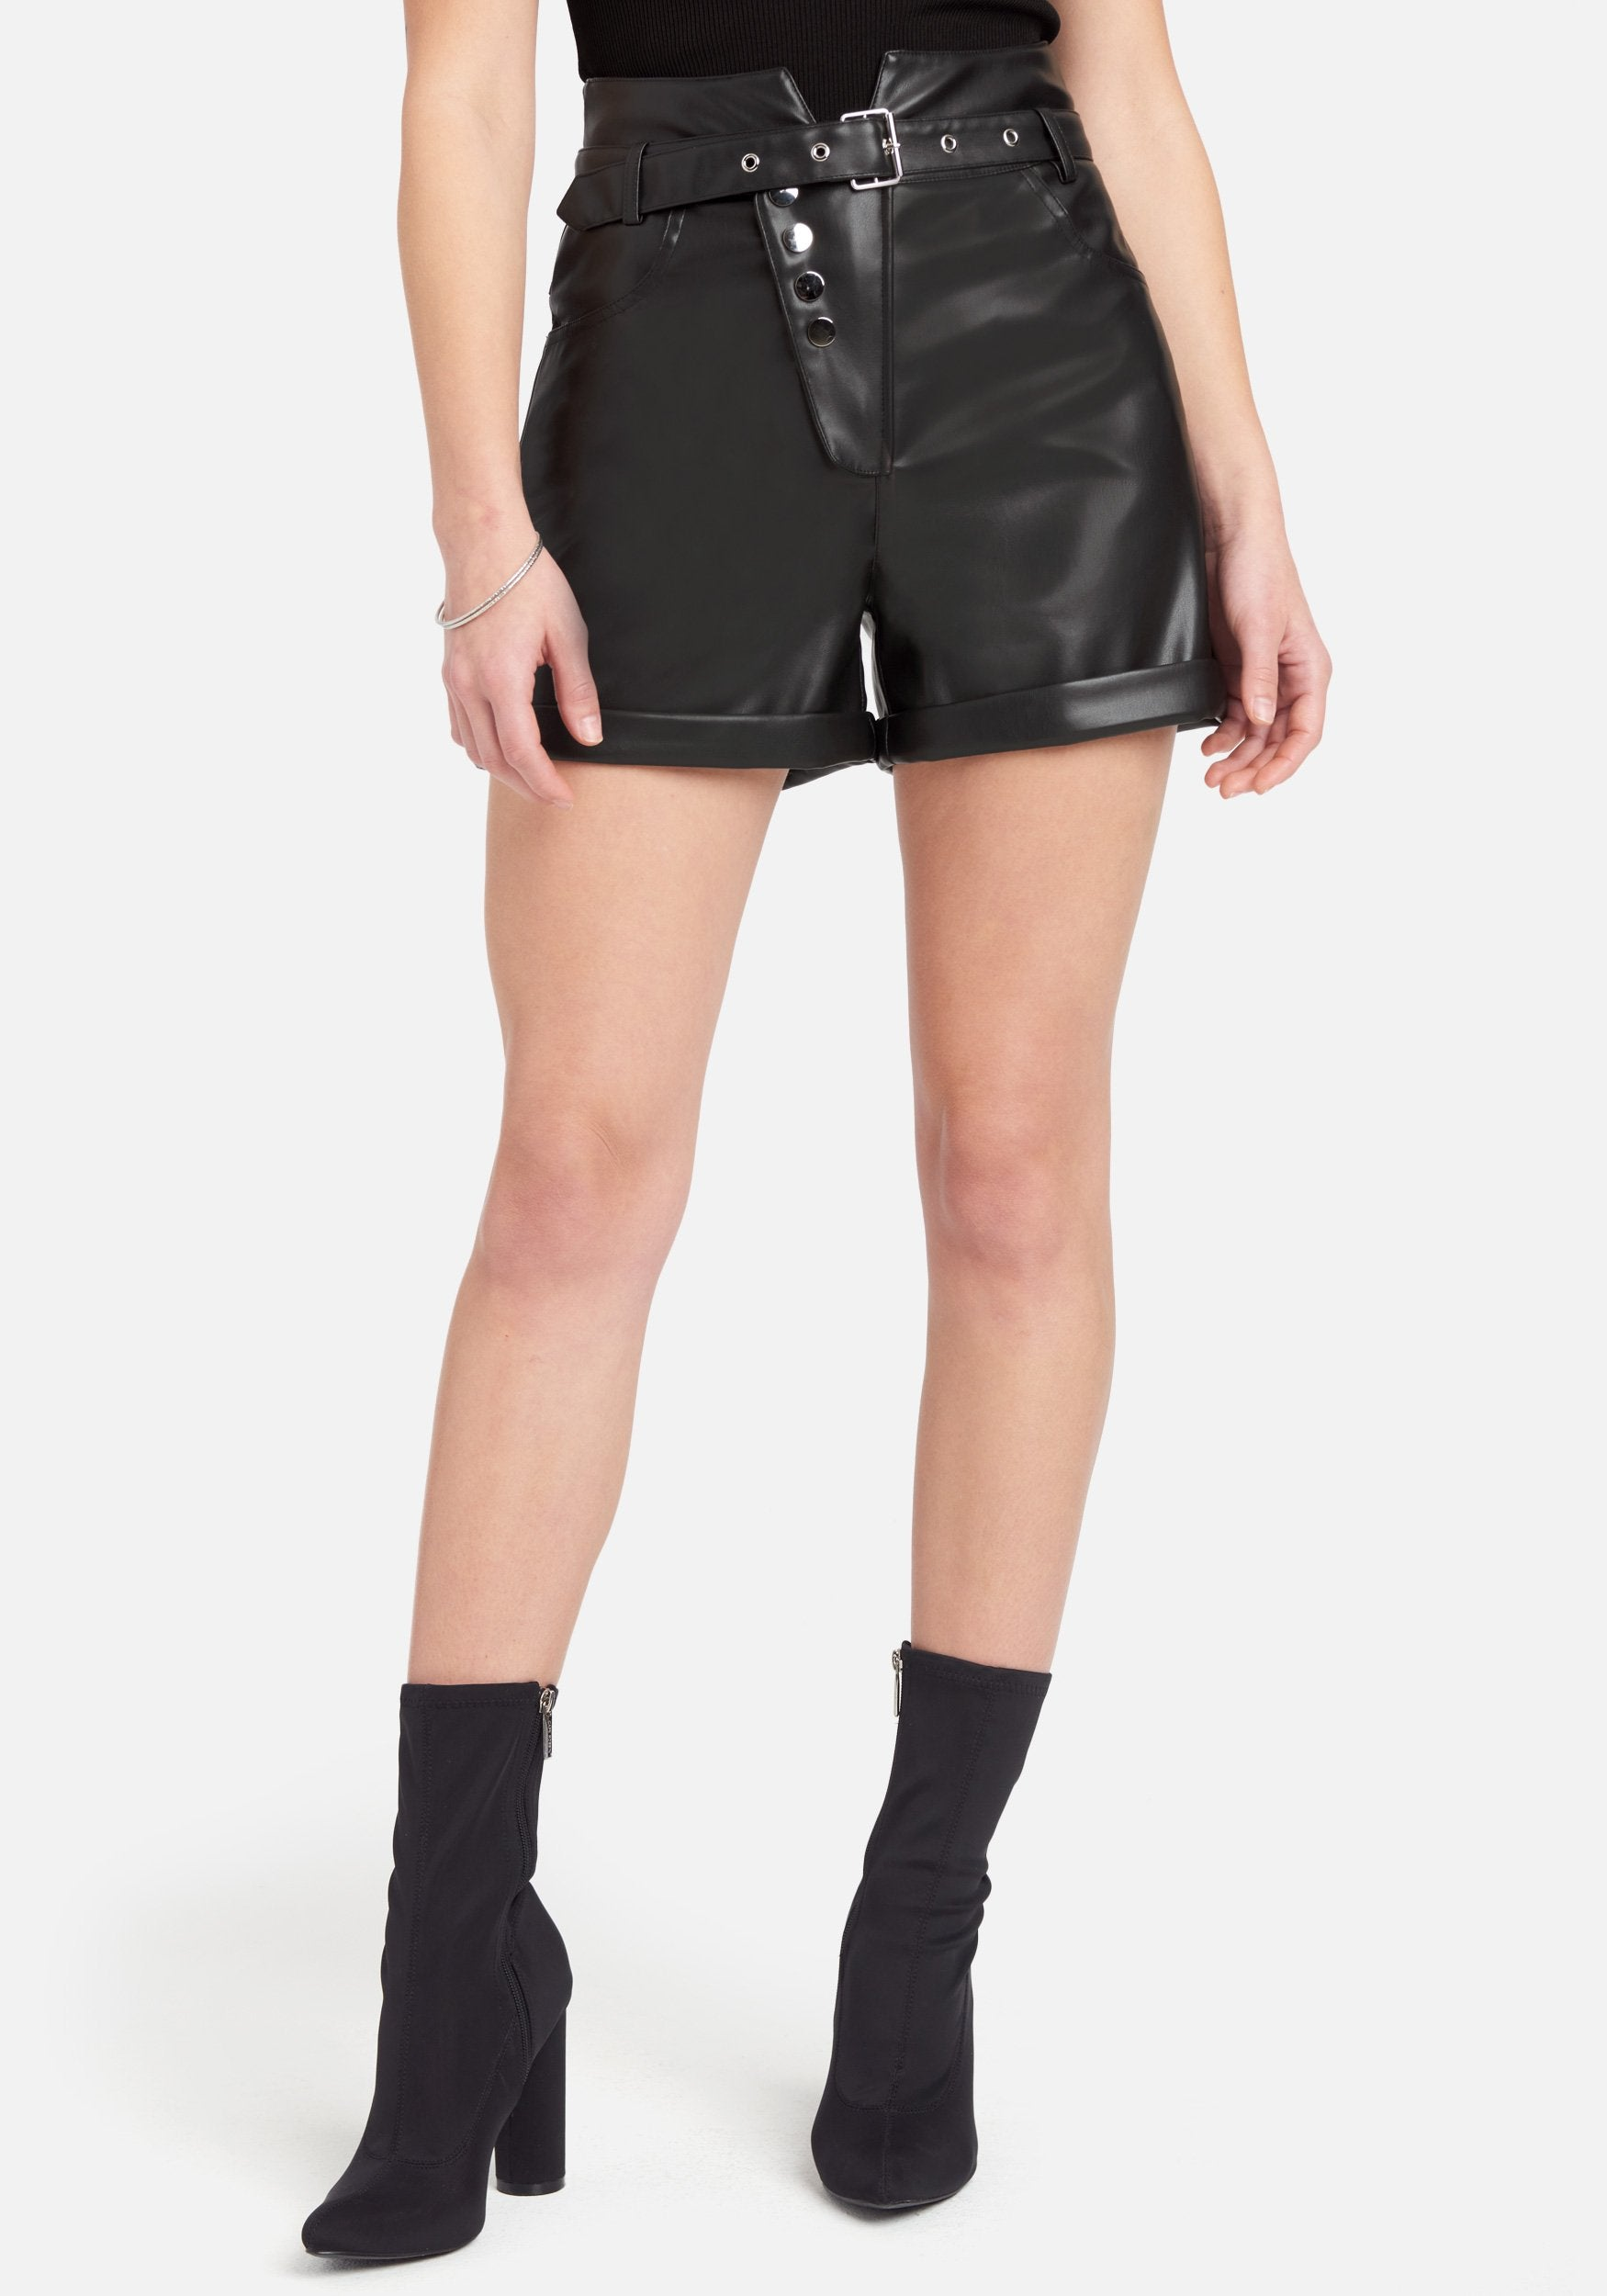 Bebe Women's Faux Leather Exposed Button Shorts, Size XS in Black Polyurethane